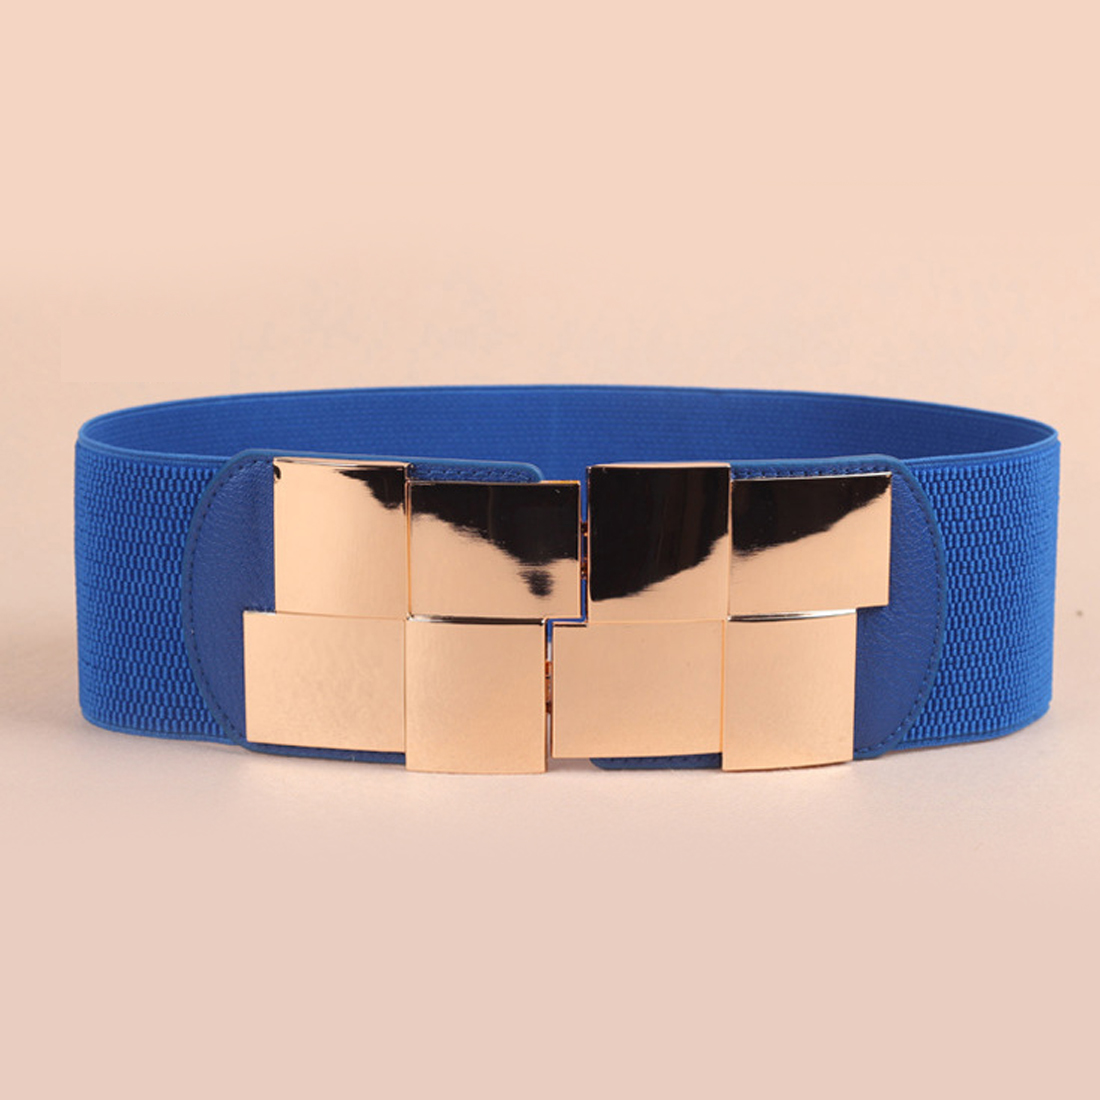 Outdoor Dream Store Hot Fashion Women Belt Korean Stretch Elastic Waistband Wide Metal Waist Belts Simple box mirror girdle sexy lady